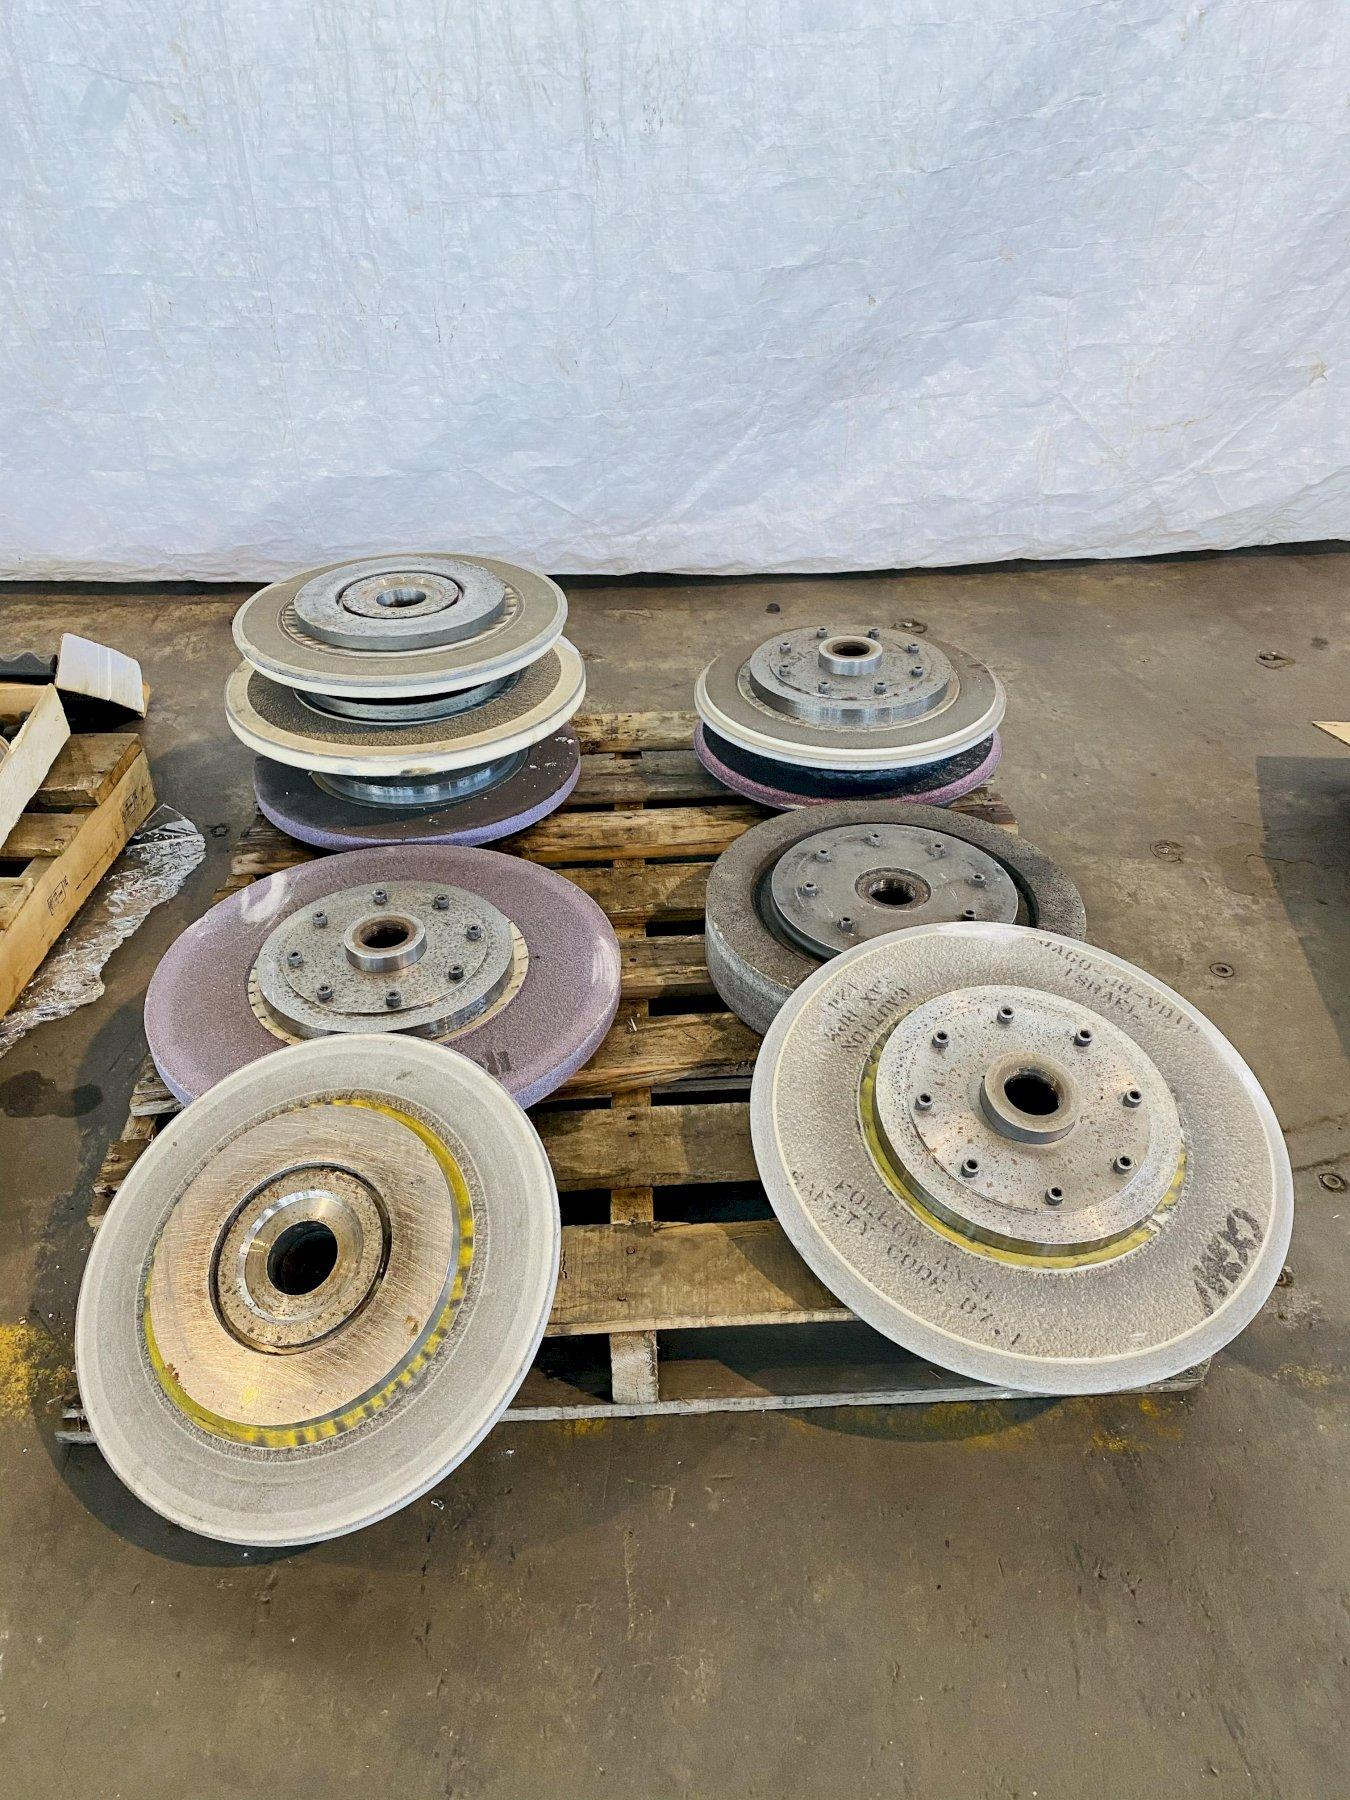 (10) LEMPCO GRINDING WHEELS HUBS. STOCK # 0312521